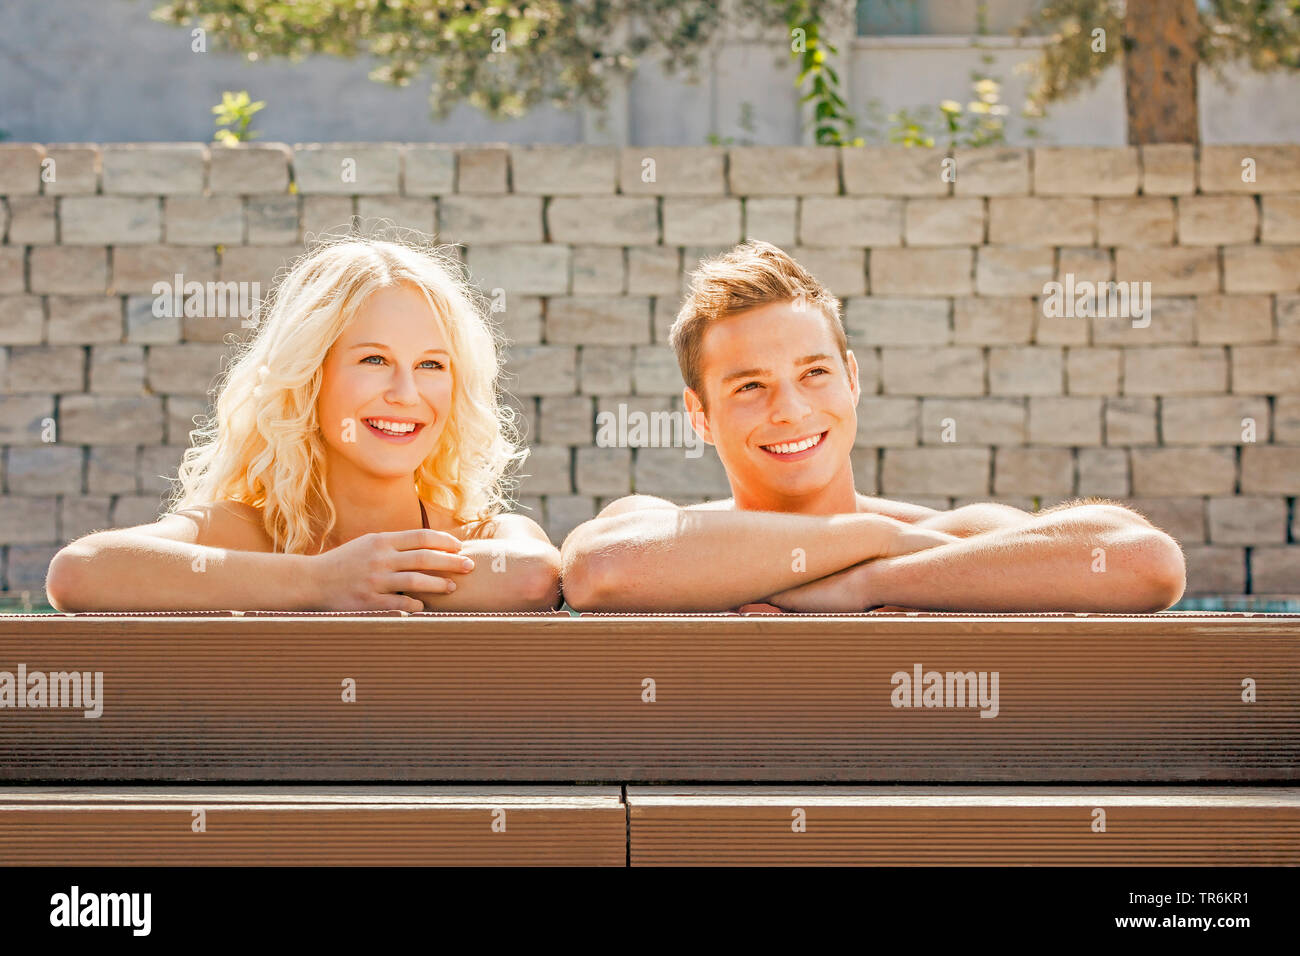 junges Paar entspannt sich am Schwimmbeckenrand, Deutschland | young couple relaxing at a pool, Germany | BLWS486422.jpg [ (c) blickwinkel/McPHOTO/M. - Stock Image